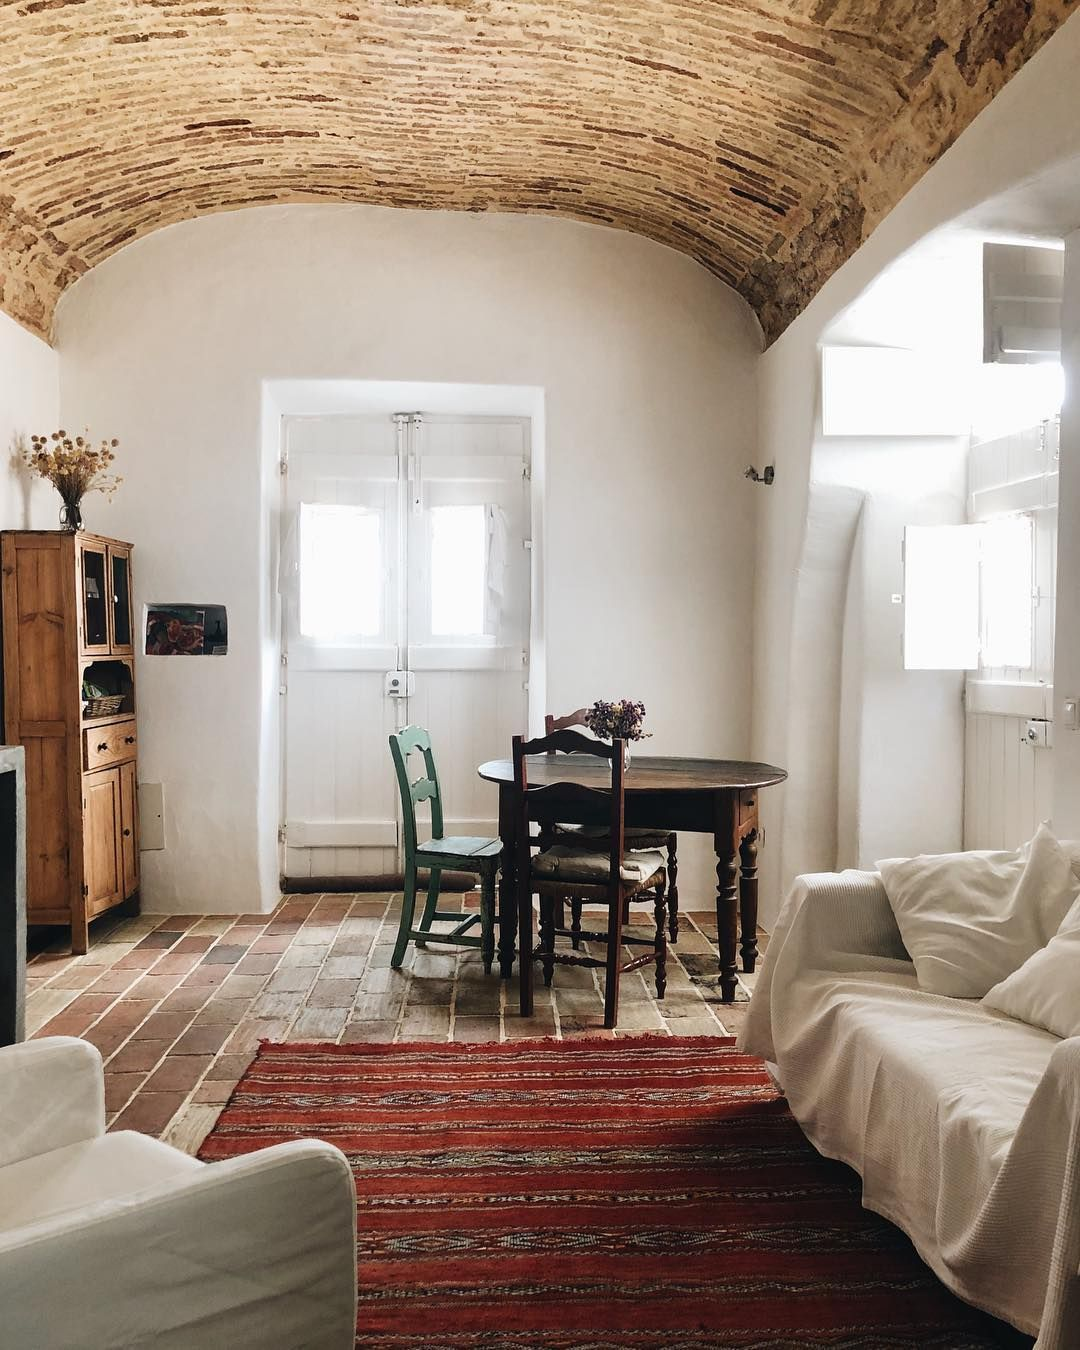 Vacation Rental Apartment Olhao Portugal Overtheocean Com Home And Living Bohemian Modern Style House Interior